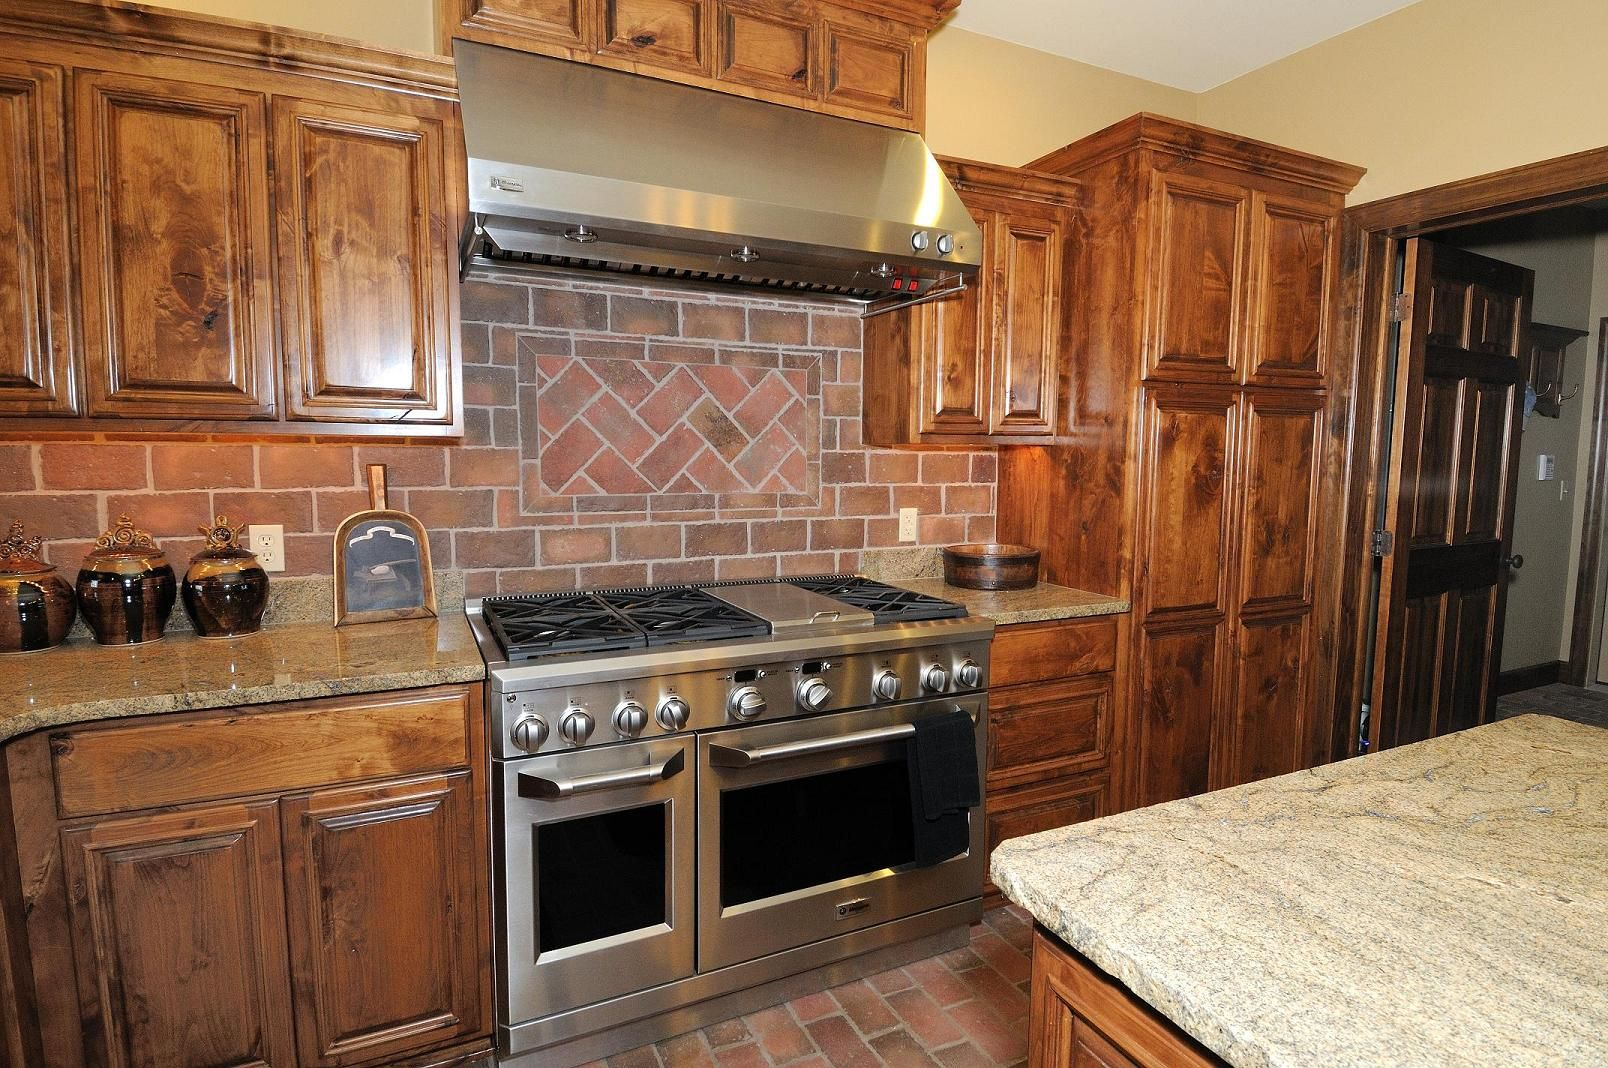 Kitchen Decorative Tiles Solid Wood Bkitchenb Bcabinetsb Bwith Brickb Subway